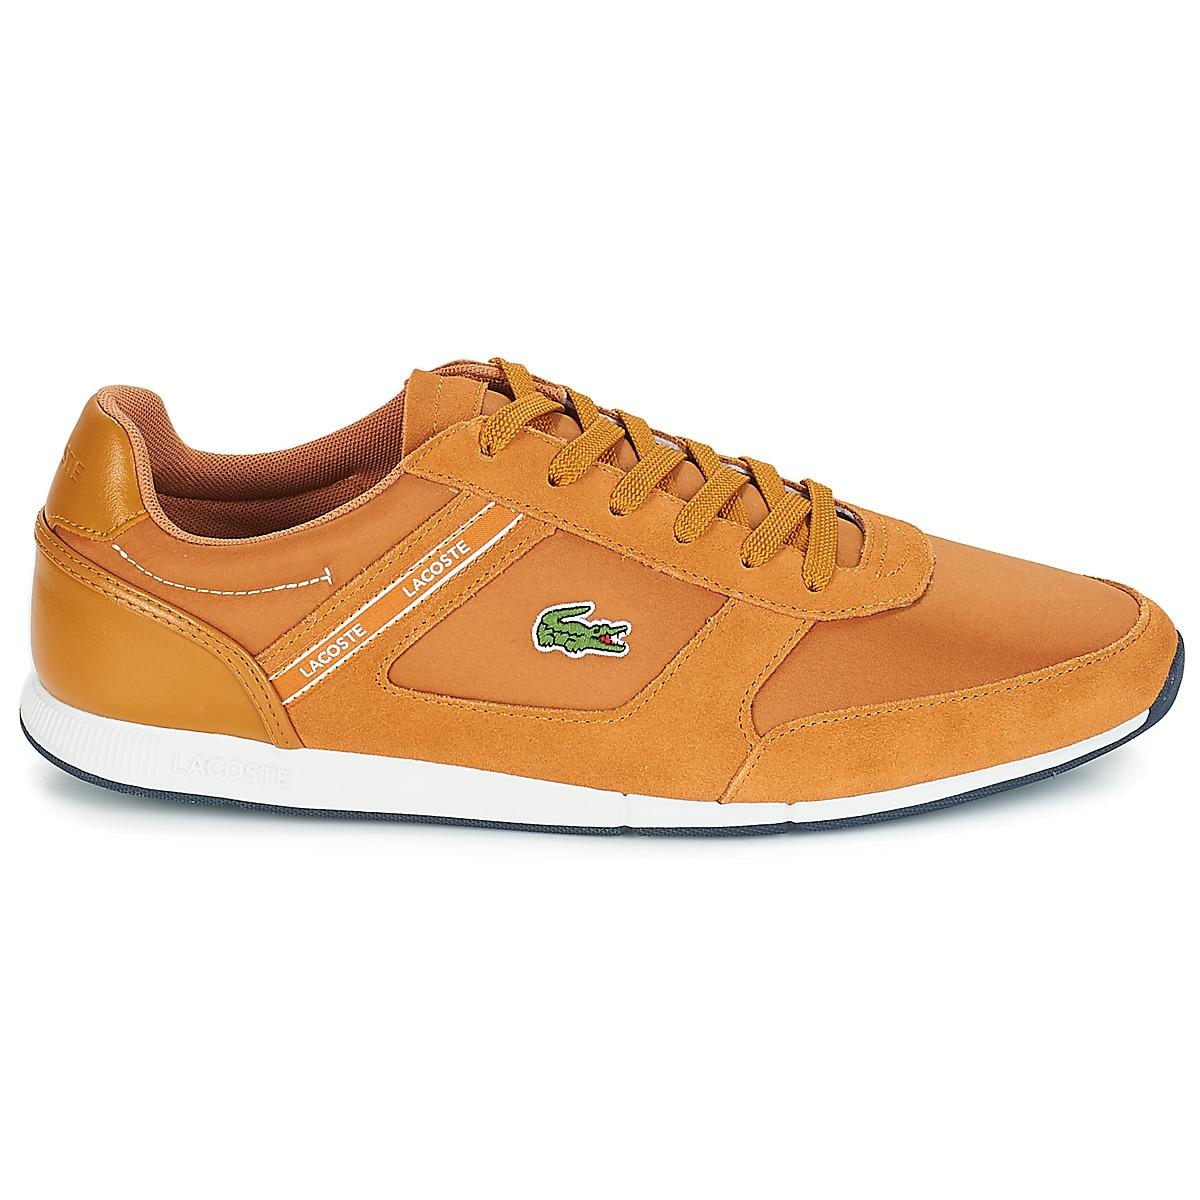 1 ShoestrainersIn Men Menerva Lacoste 318 Sport Lyst For Brown EWH9bD2eIY